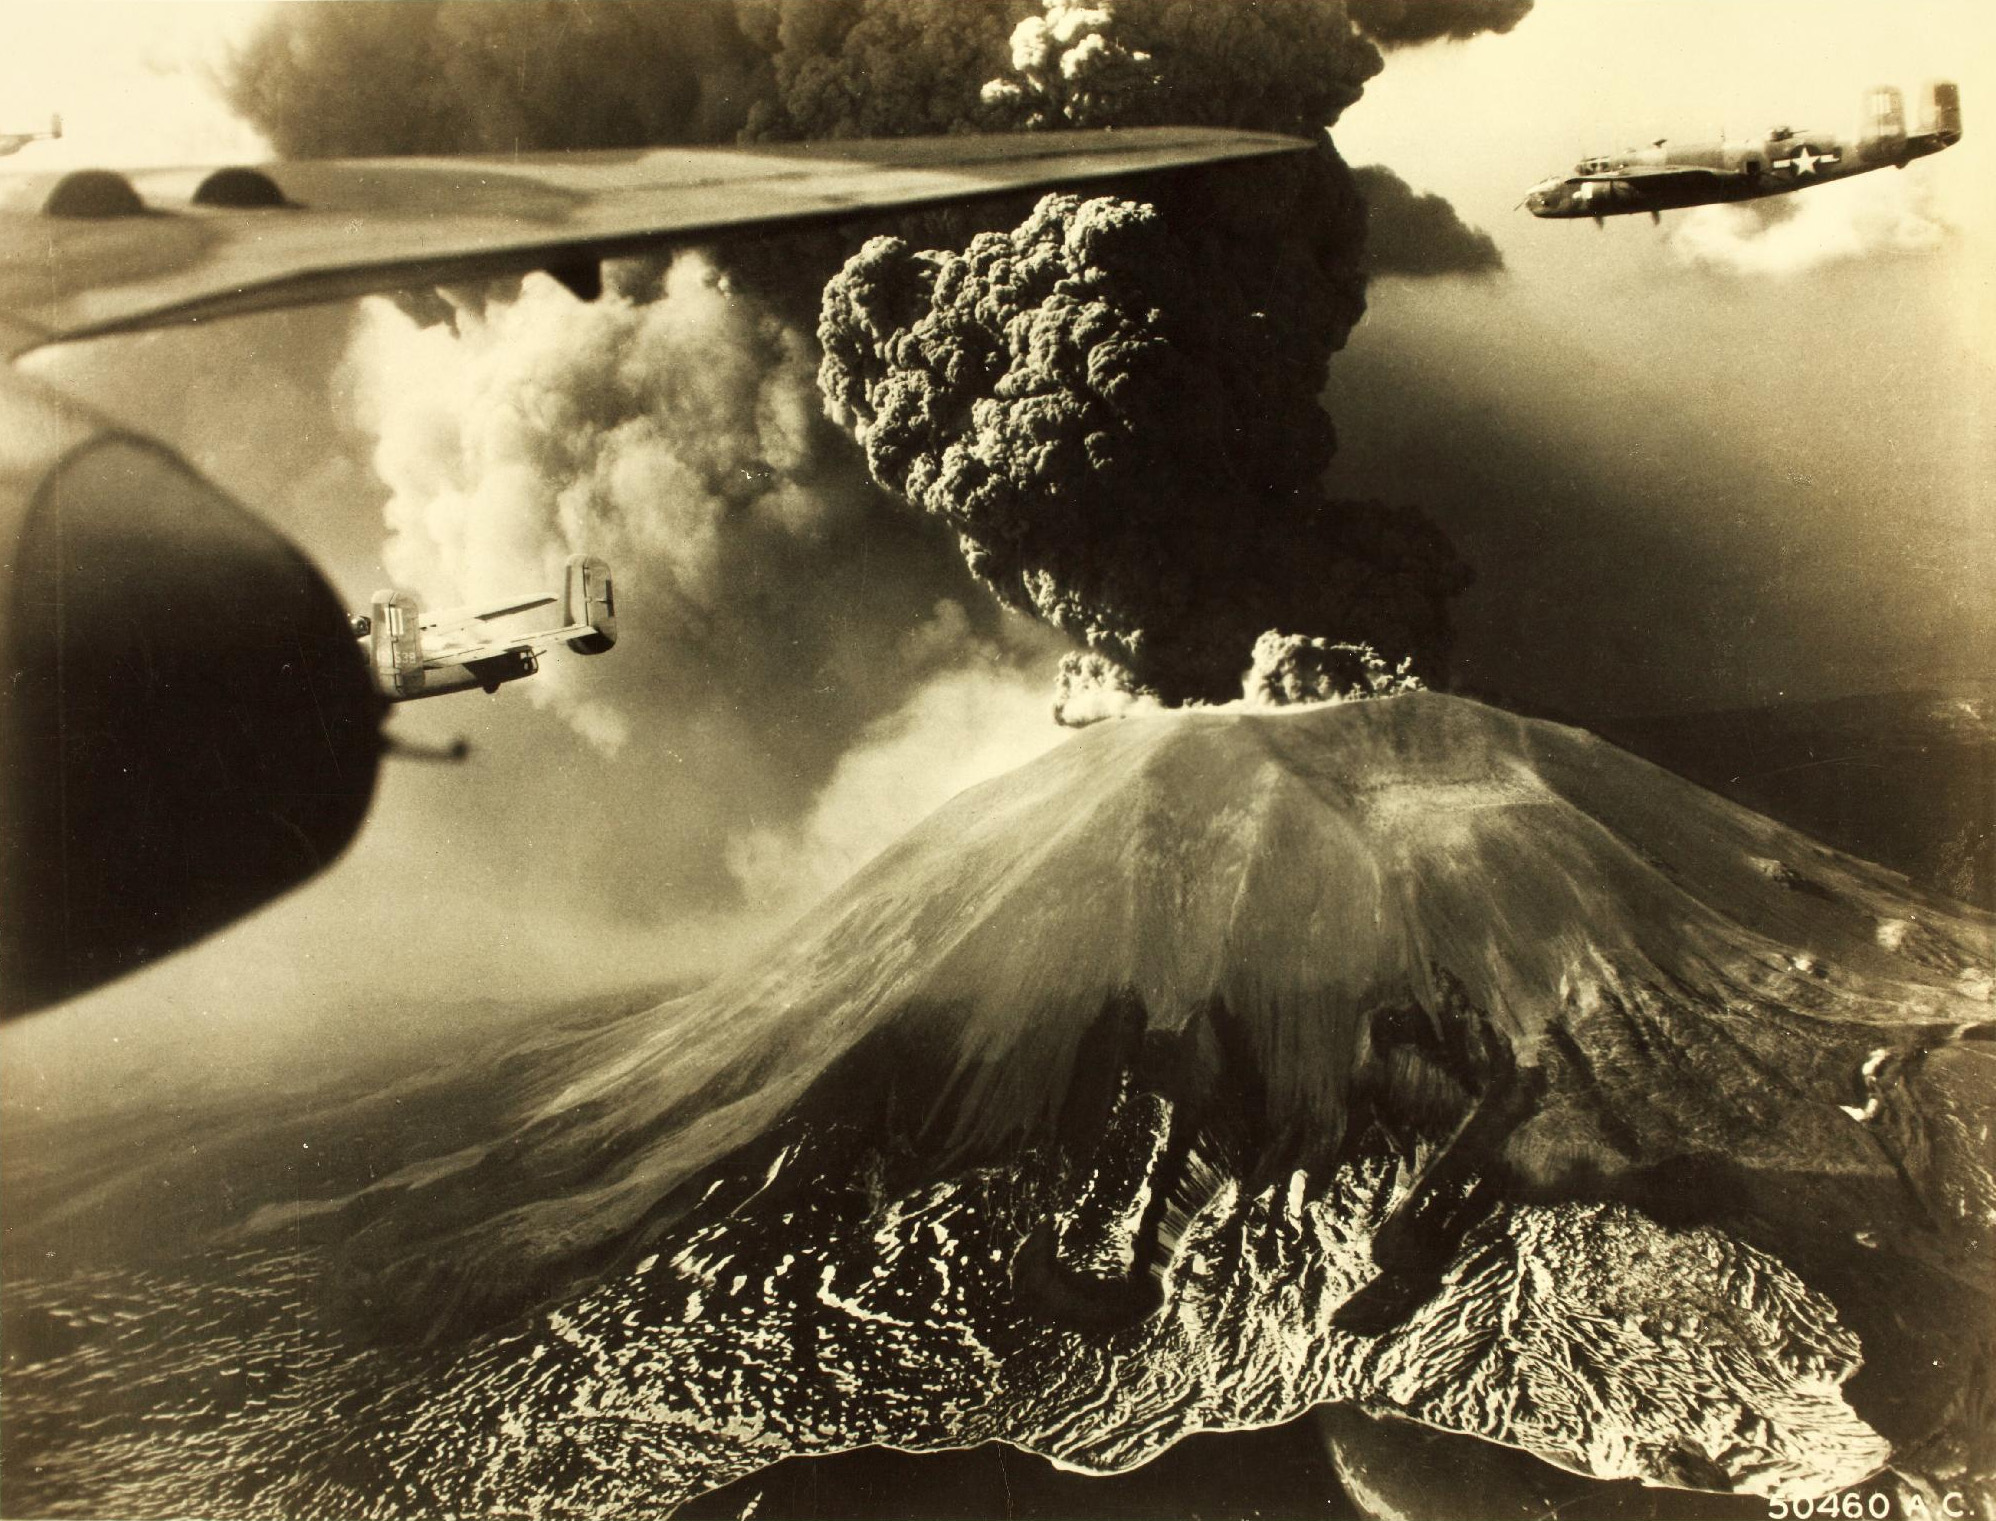 http://upload.wikimedia.org/wikipedia/commons/a/aa/Mt_Vesuvius_Erupting.jpg